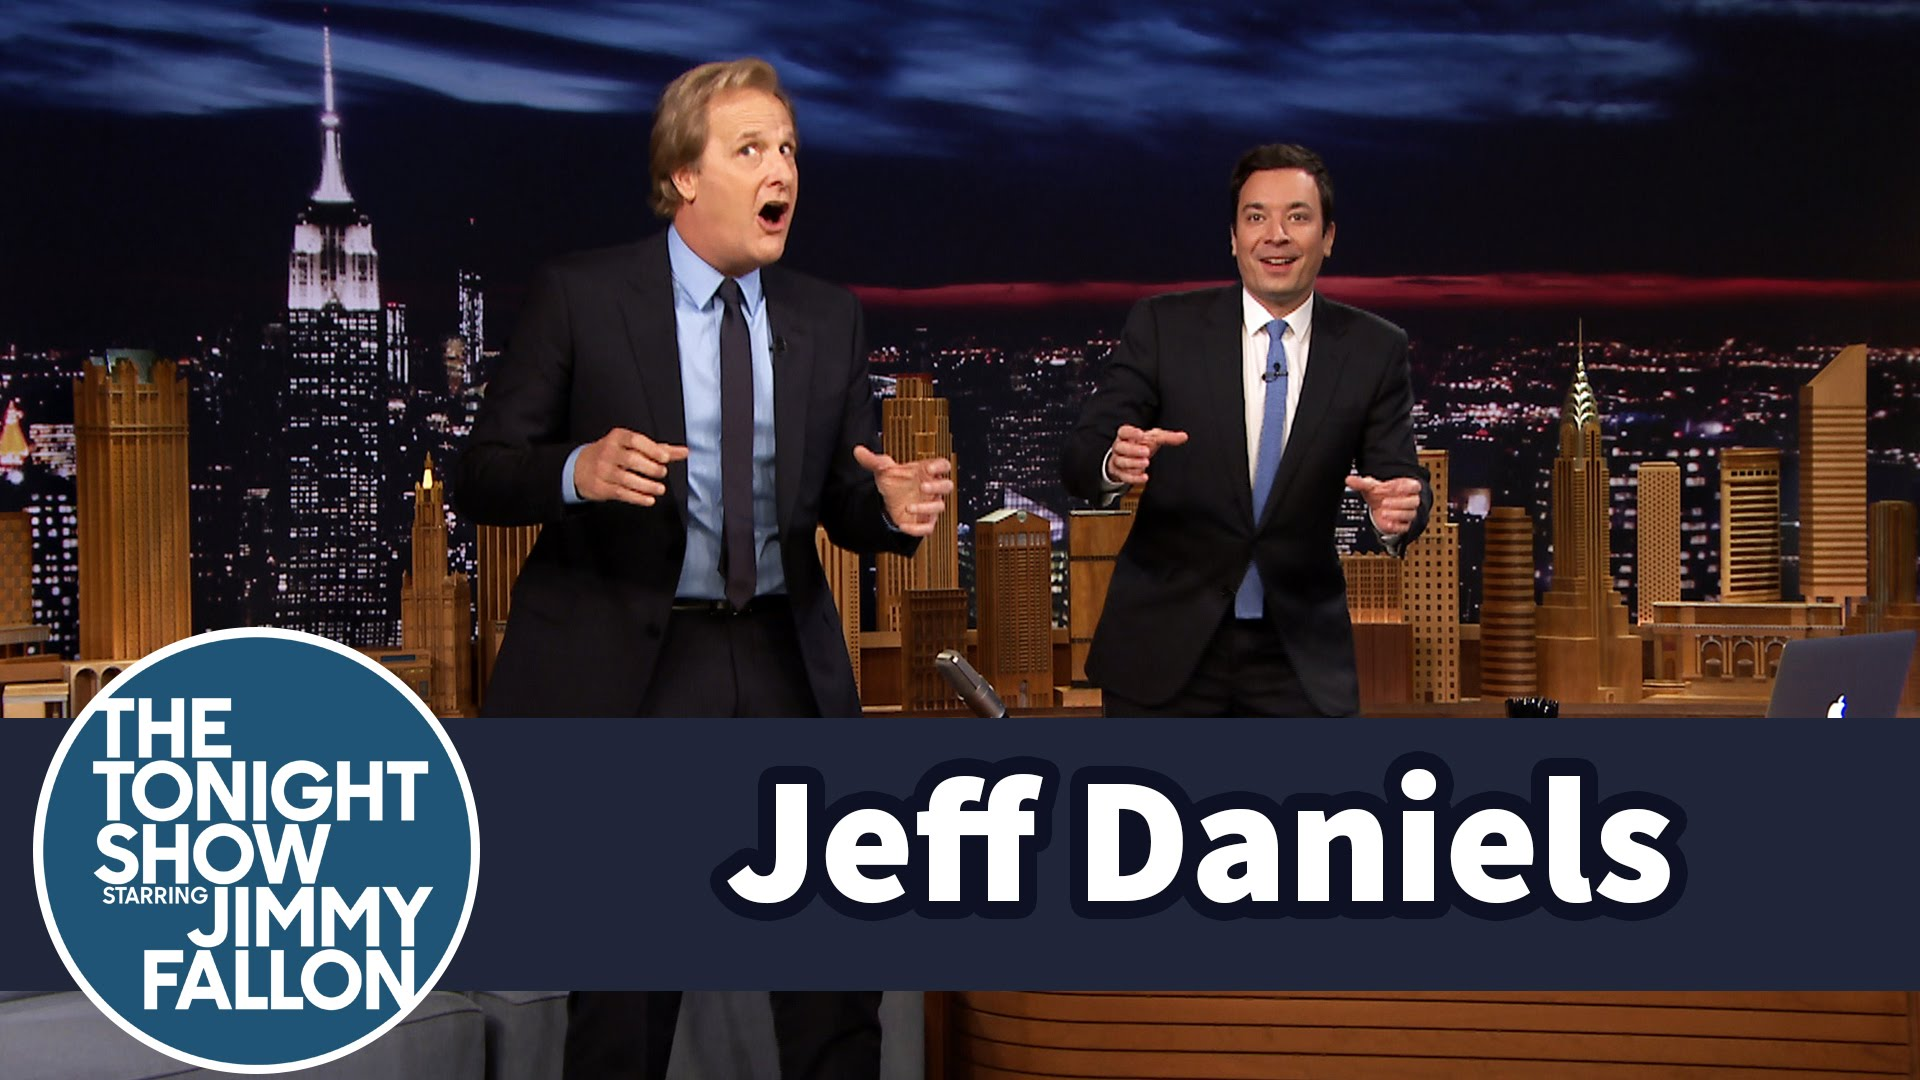 Jeff Daniels, Engelbert Humperdinck, and the Big Bay Shuffle on Jimmy Fallon